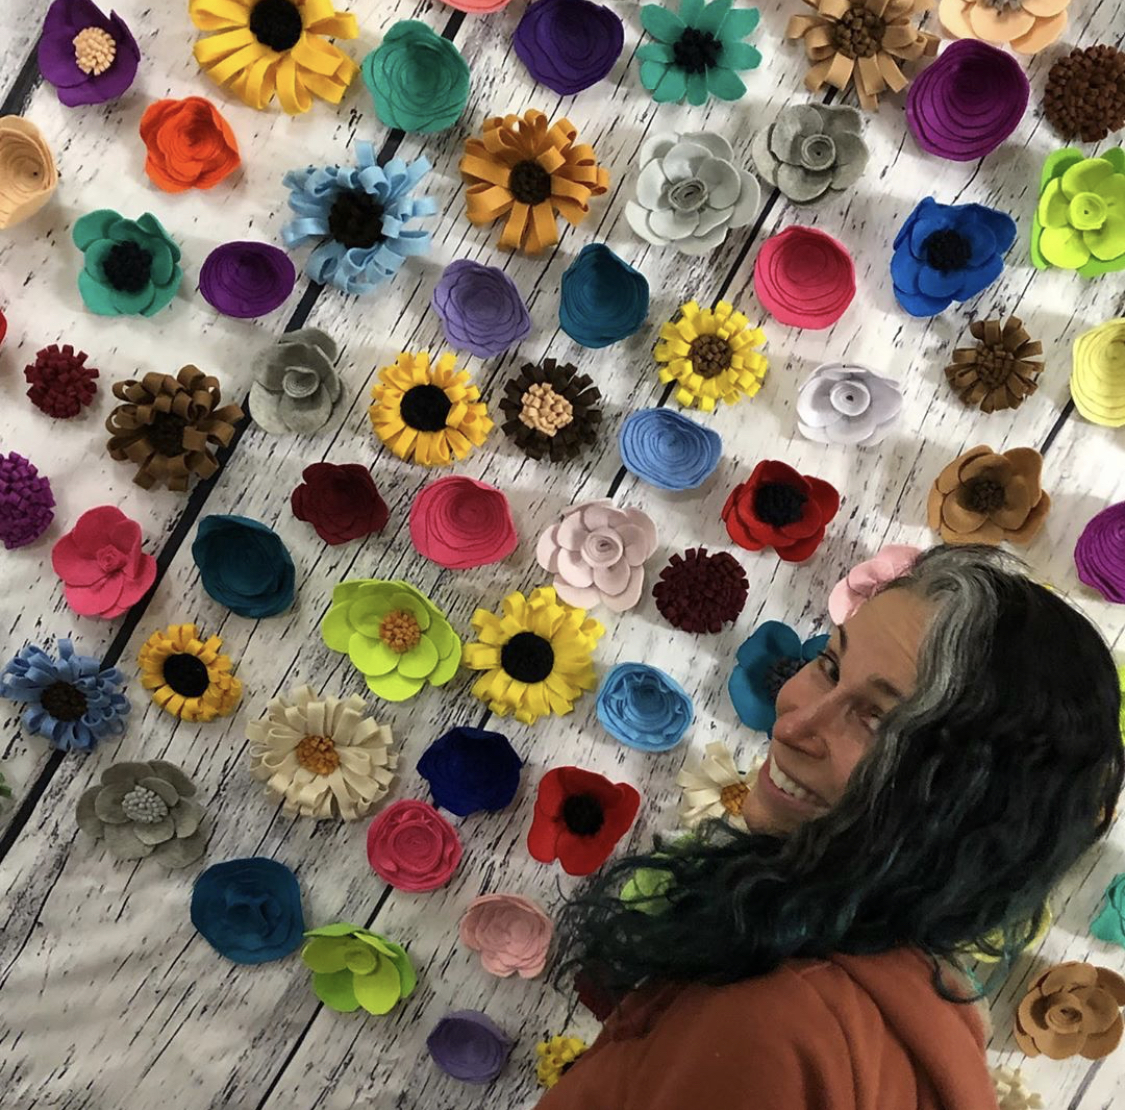 "A Shrine to Wallflowers - Kristen Alexandra Milano's installation of colorful handmade felt flowers invites the introverts among us—and everyone else as well—to snap a selfie.""I want to give spotlight to people who don't usually let themselves have any—wallflowers, the most interesting people in the room"" says Kristen, who sees this installation as the stepping stone to a larger version, possibly coming this fall.You can visit A Shrine to Wallflowers during 249 A Street's Spring Open Studios on the 2nd floor.Tag your Instagram posts #Wallflowers249 and add the location 249 A Street Cooperative"